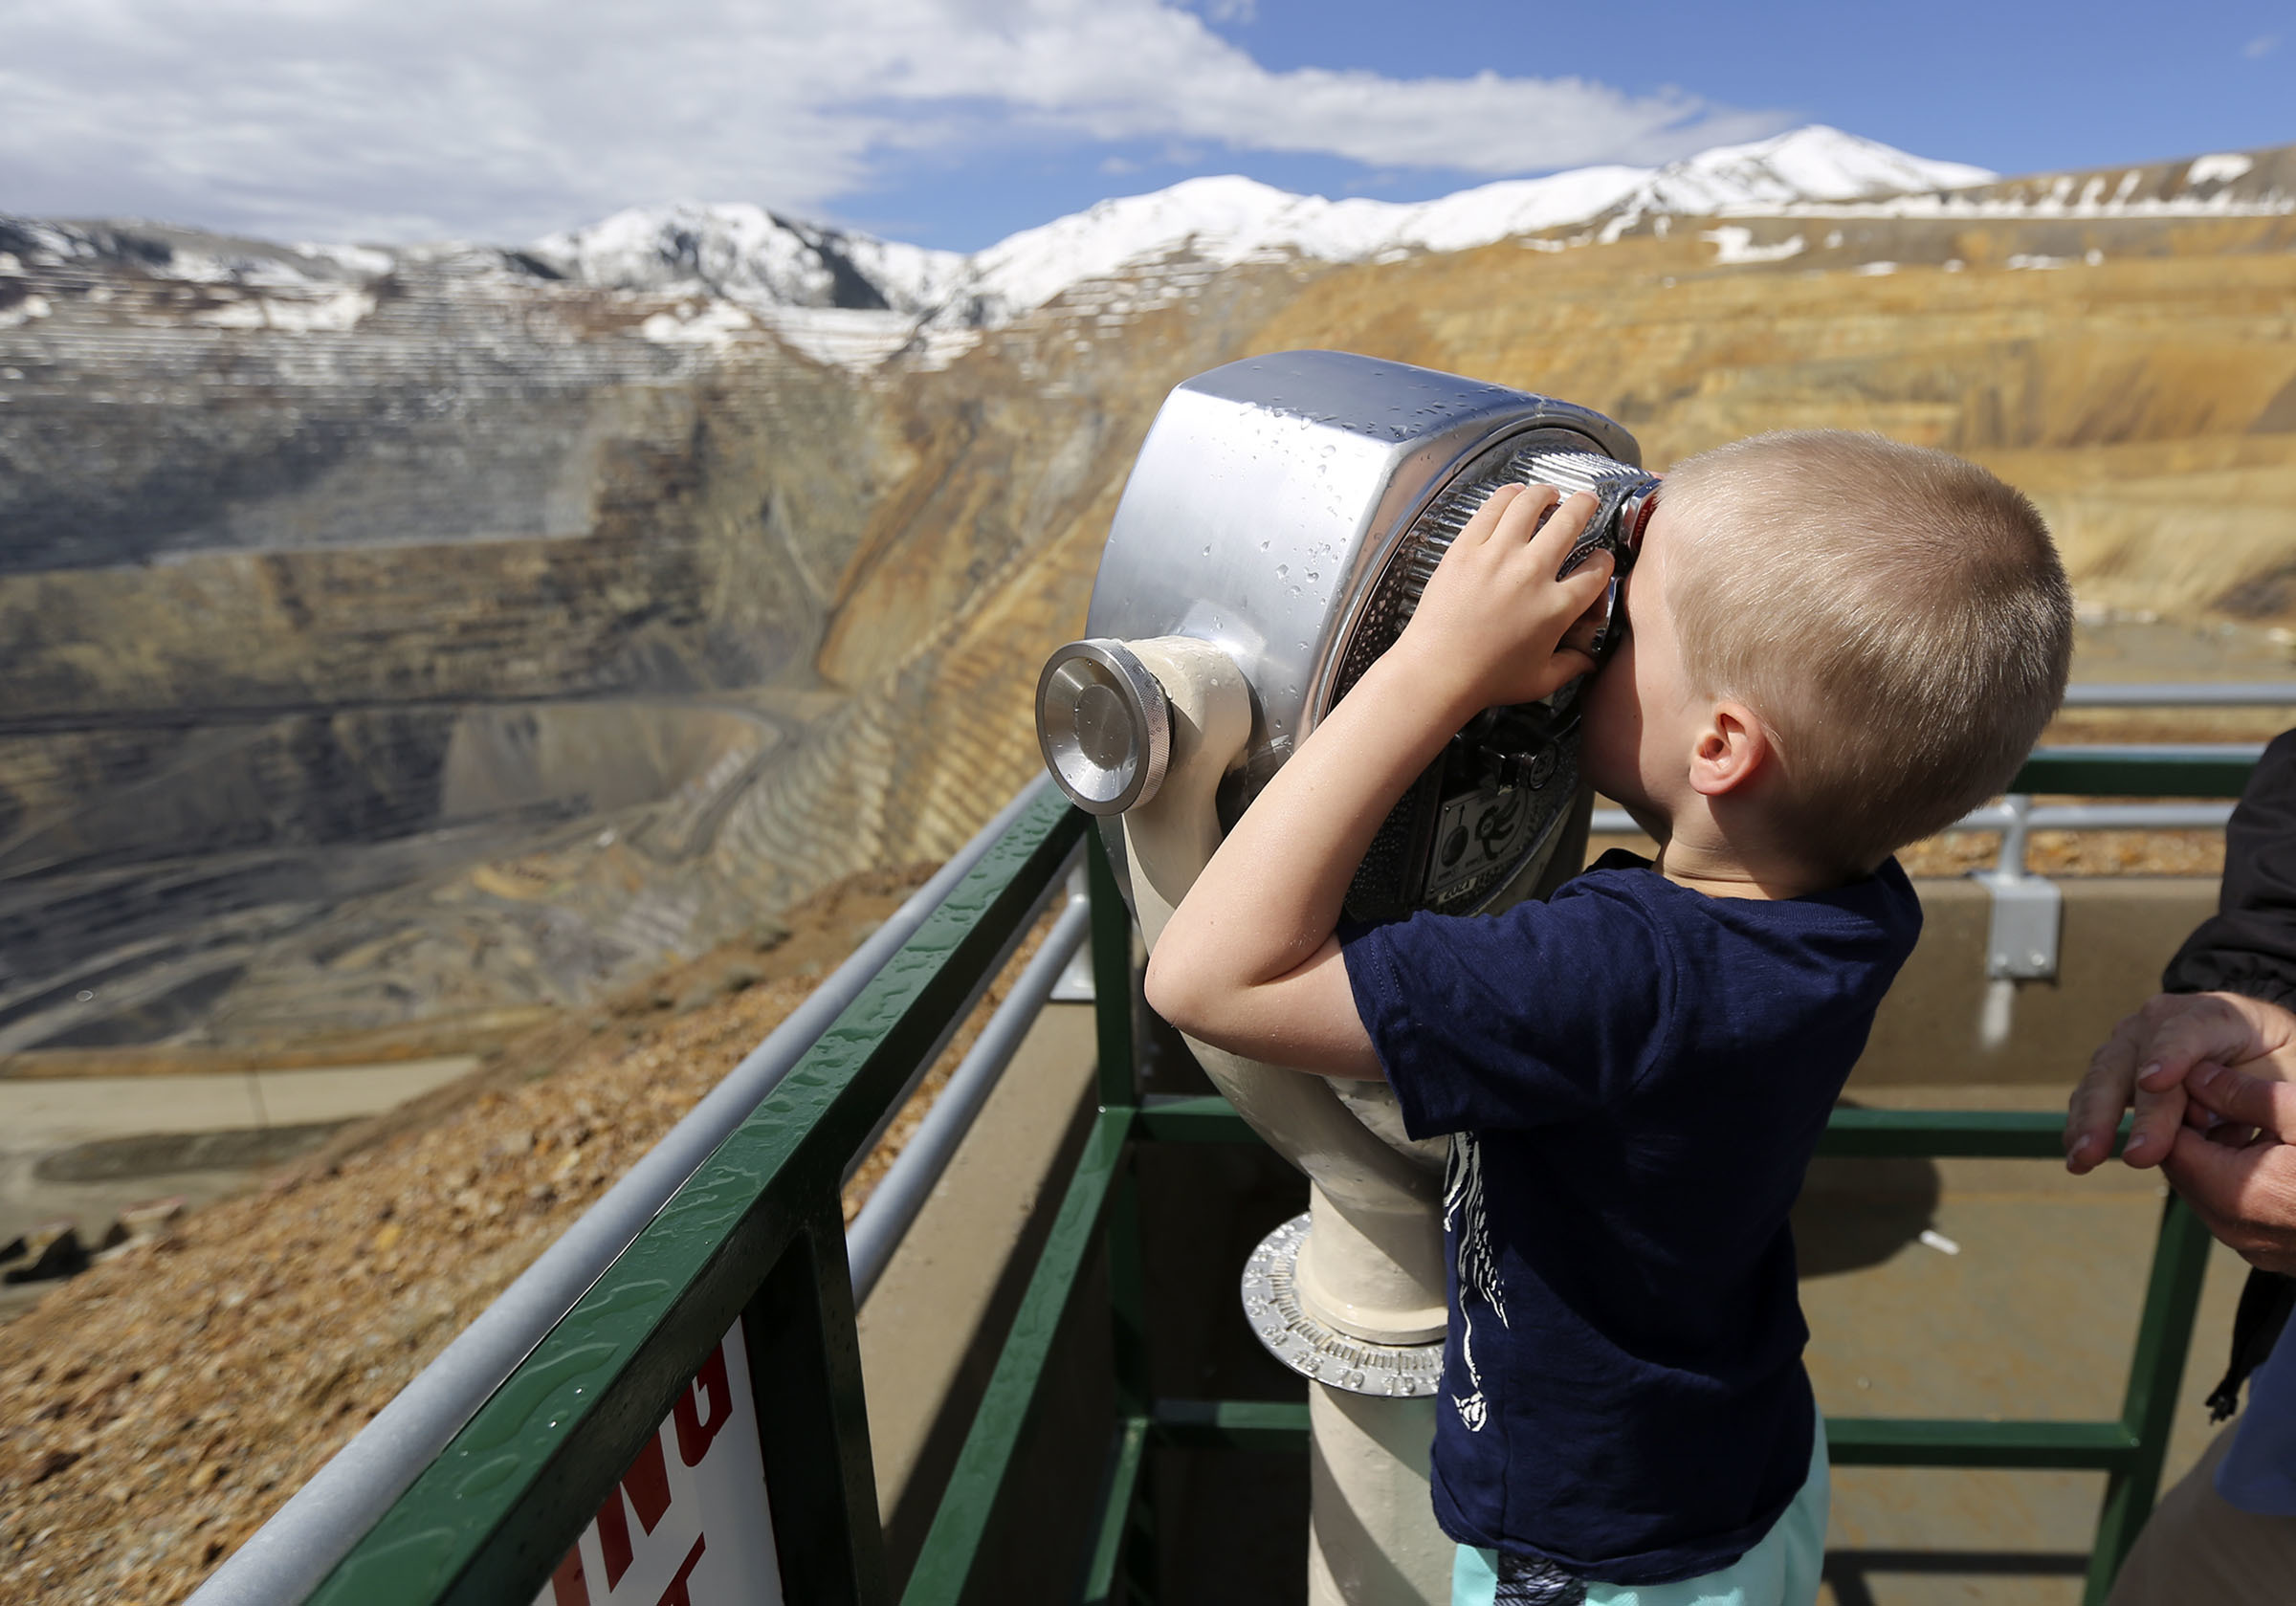 Rio Tinto Kennecott offers new visitor experience 6 years